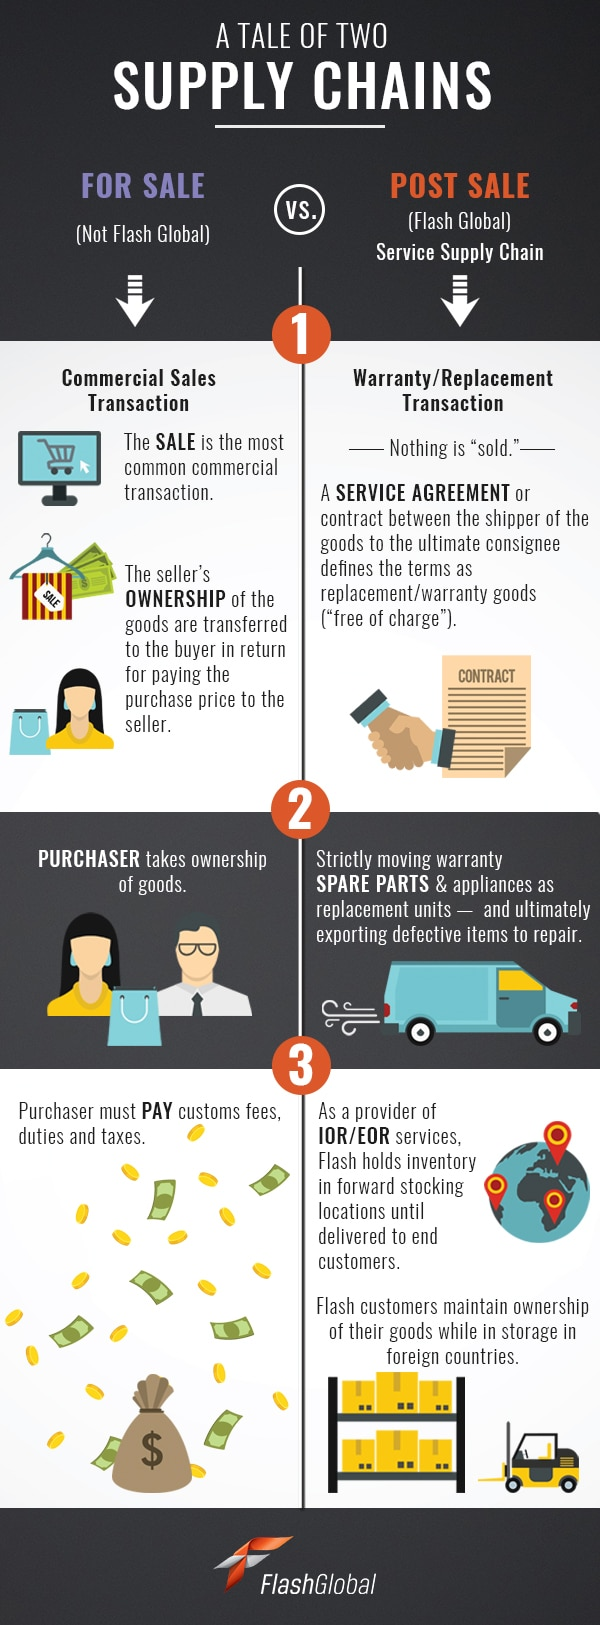 tale-of-two-supply-chains-infographic